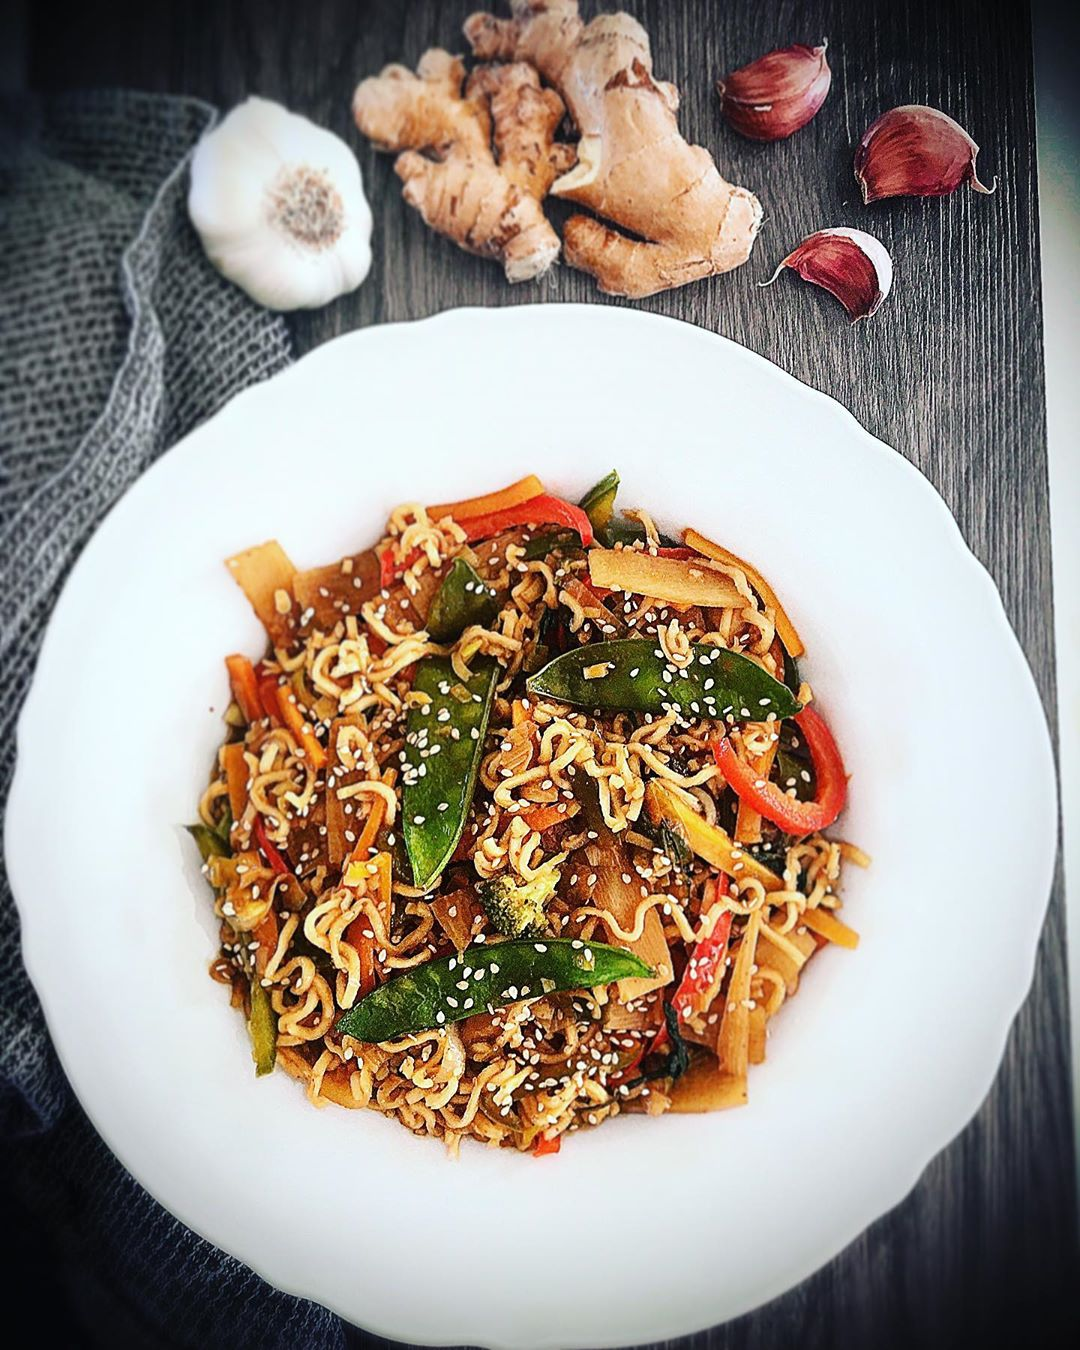 Quick & Easy: CHANTERELLE & VEGETABLE FRIED RICE